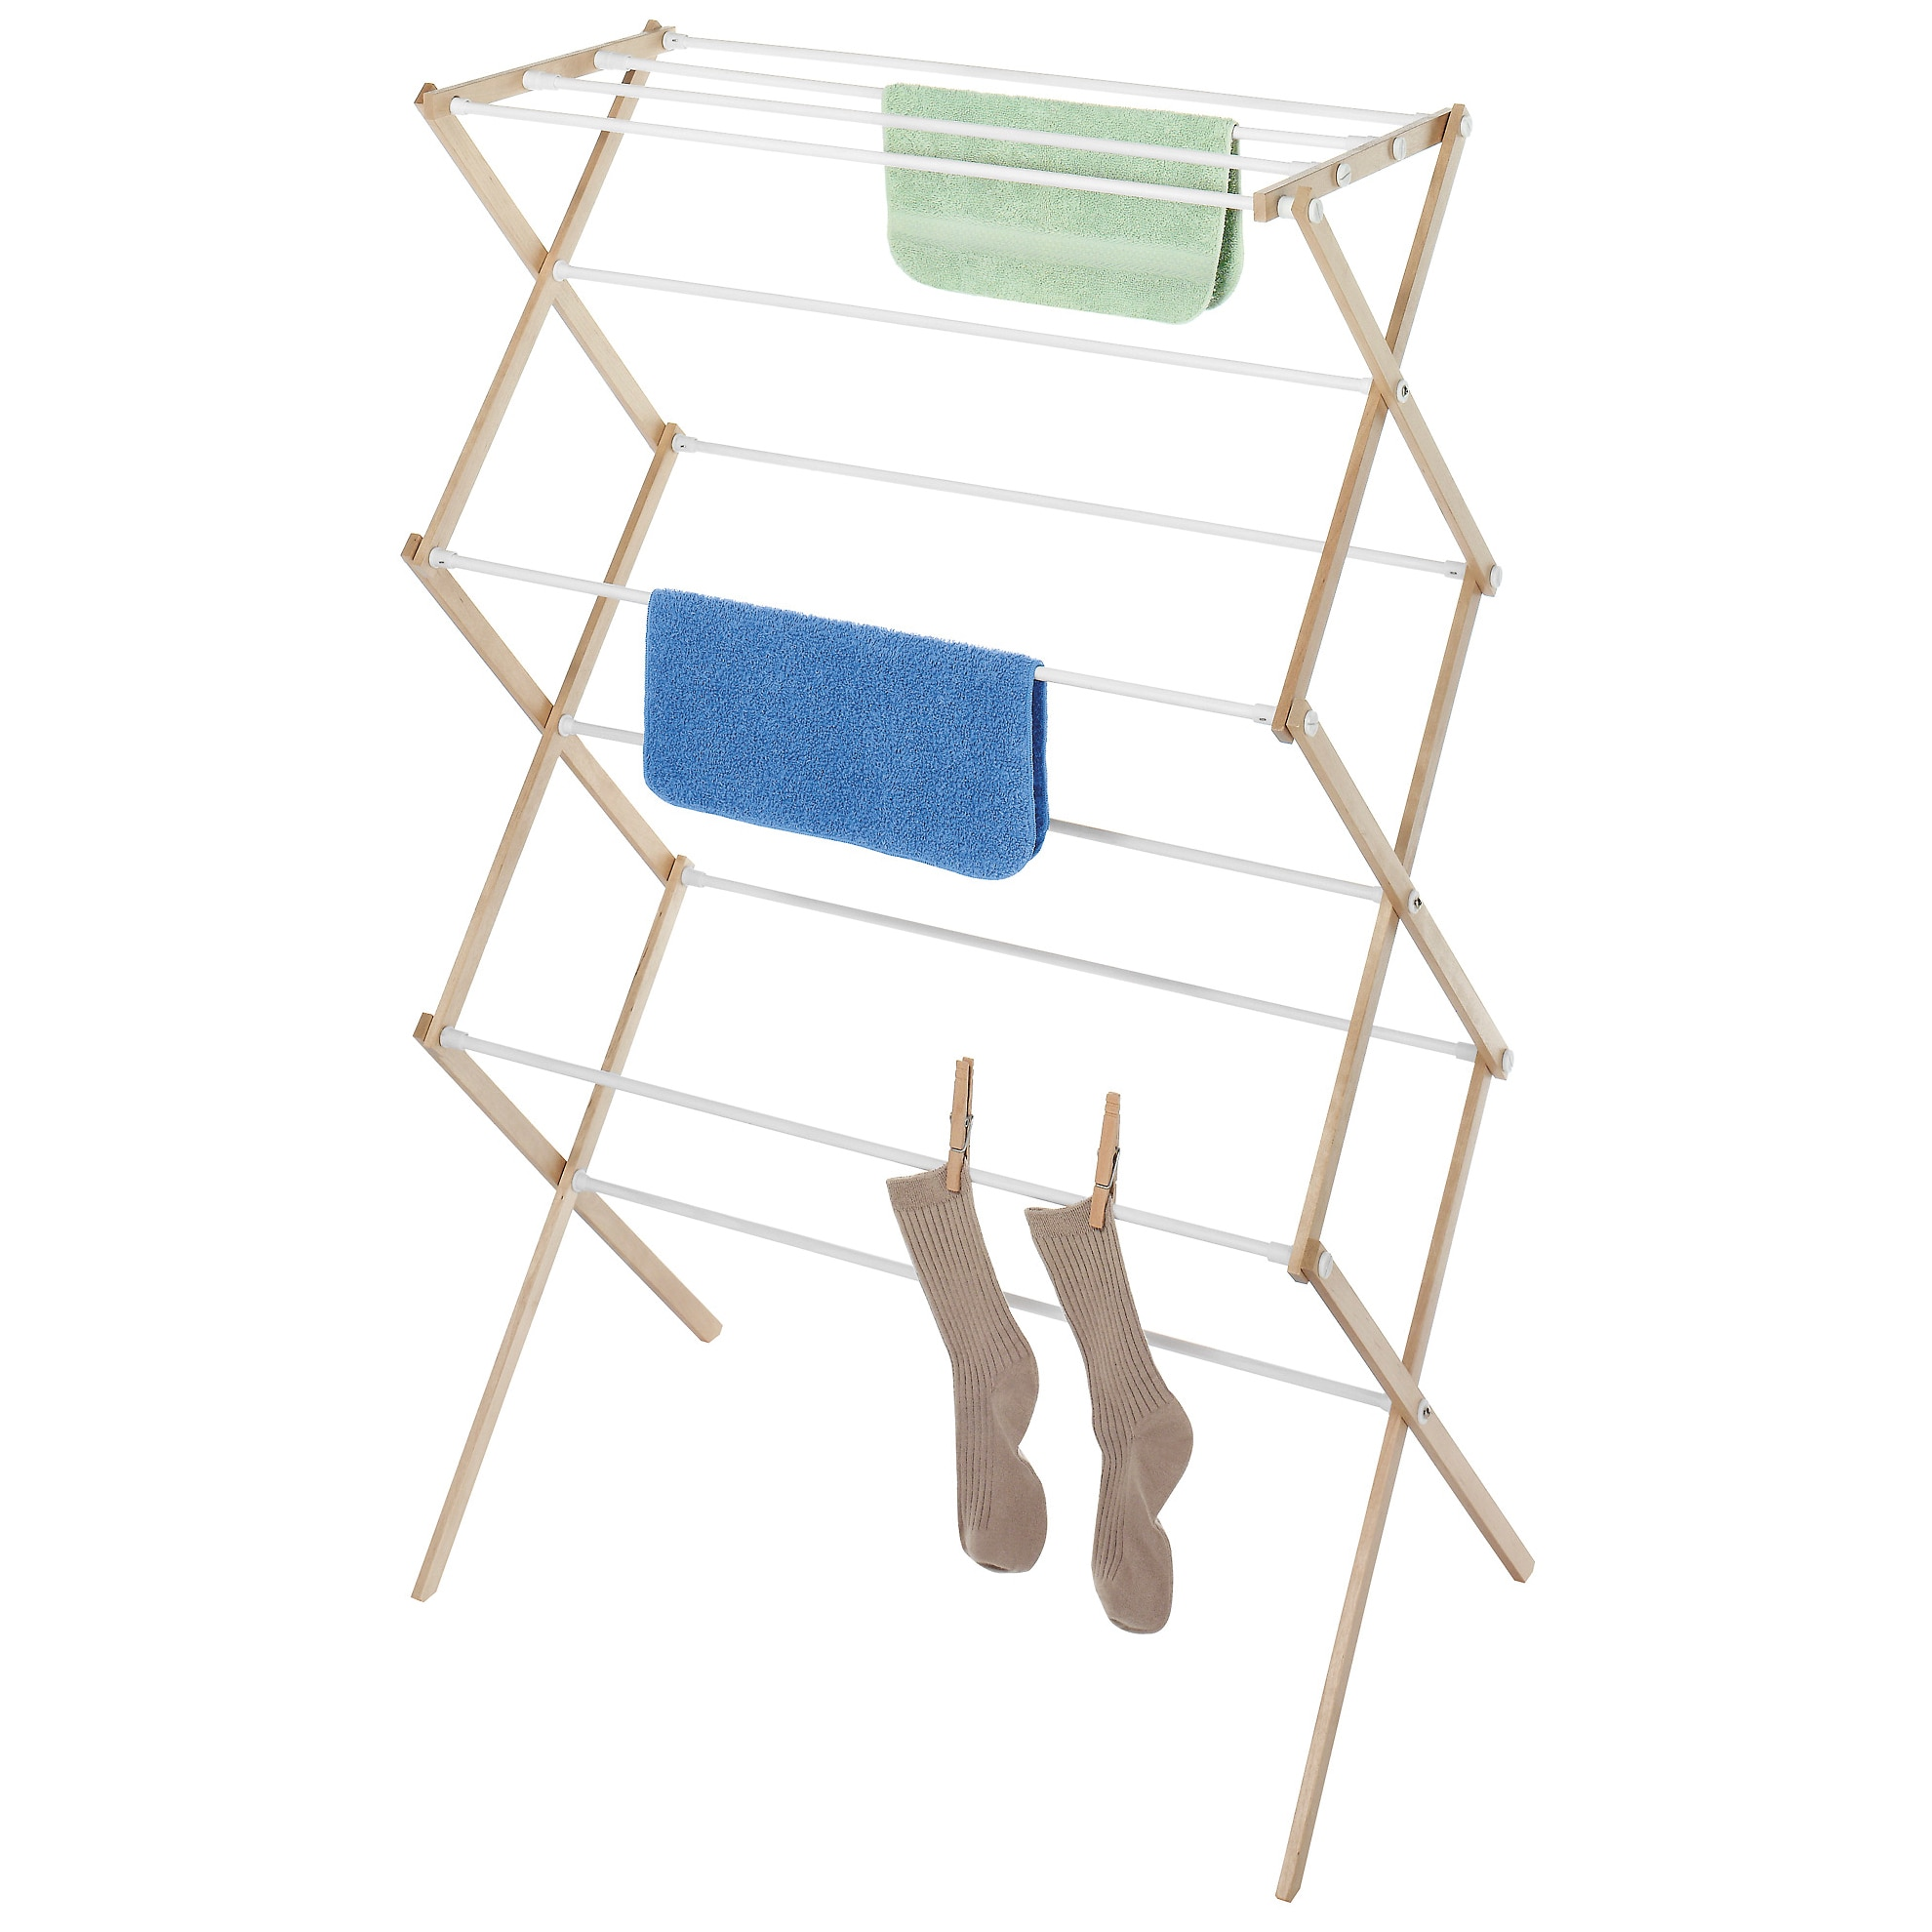 Whitmor Mfg Co 6026-2415 Natural Wood Clothes Drying Rack...